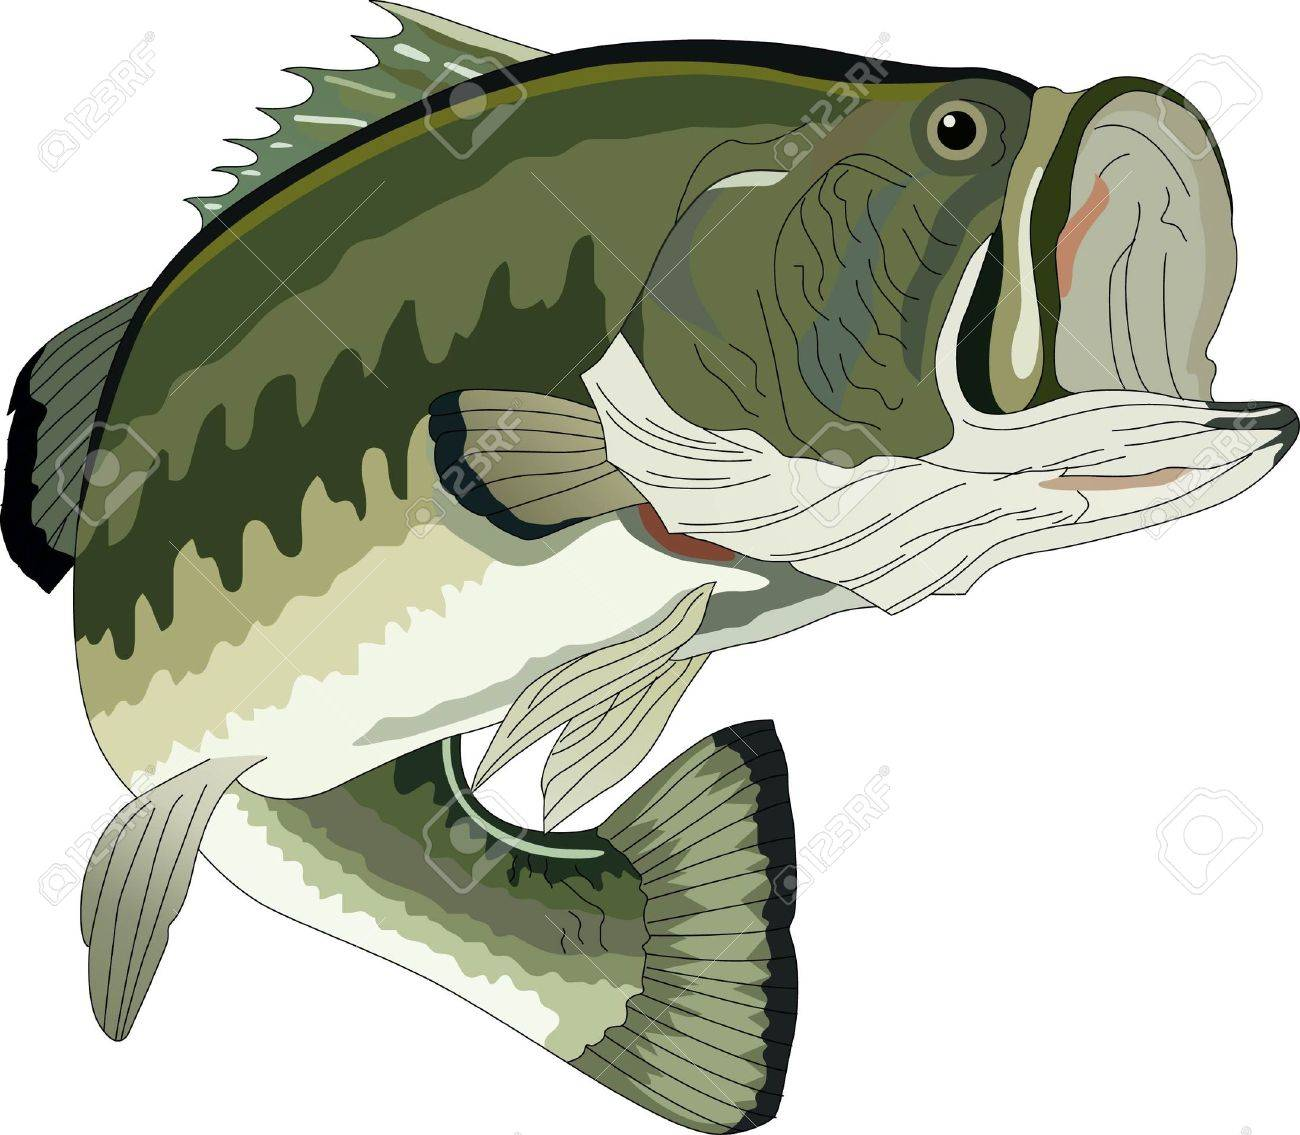 Dont forget this cute design when you go fishin. This design is perfect to take with you when you go. Everyone will love it! - 45215348